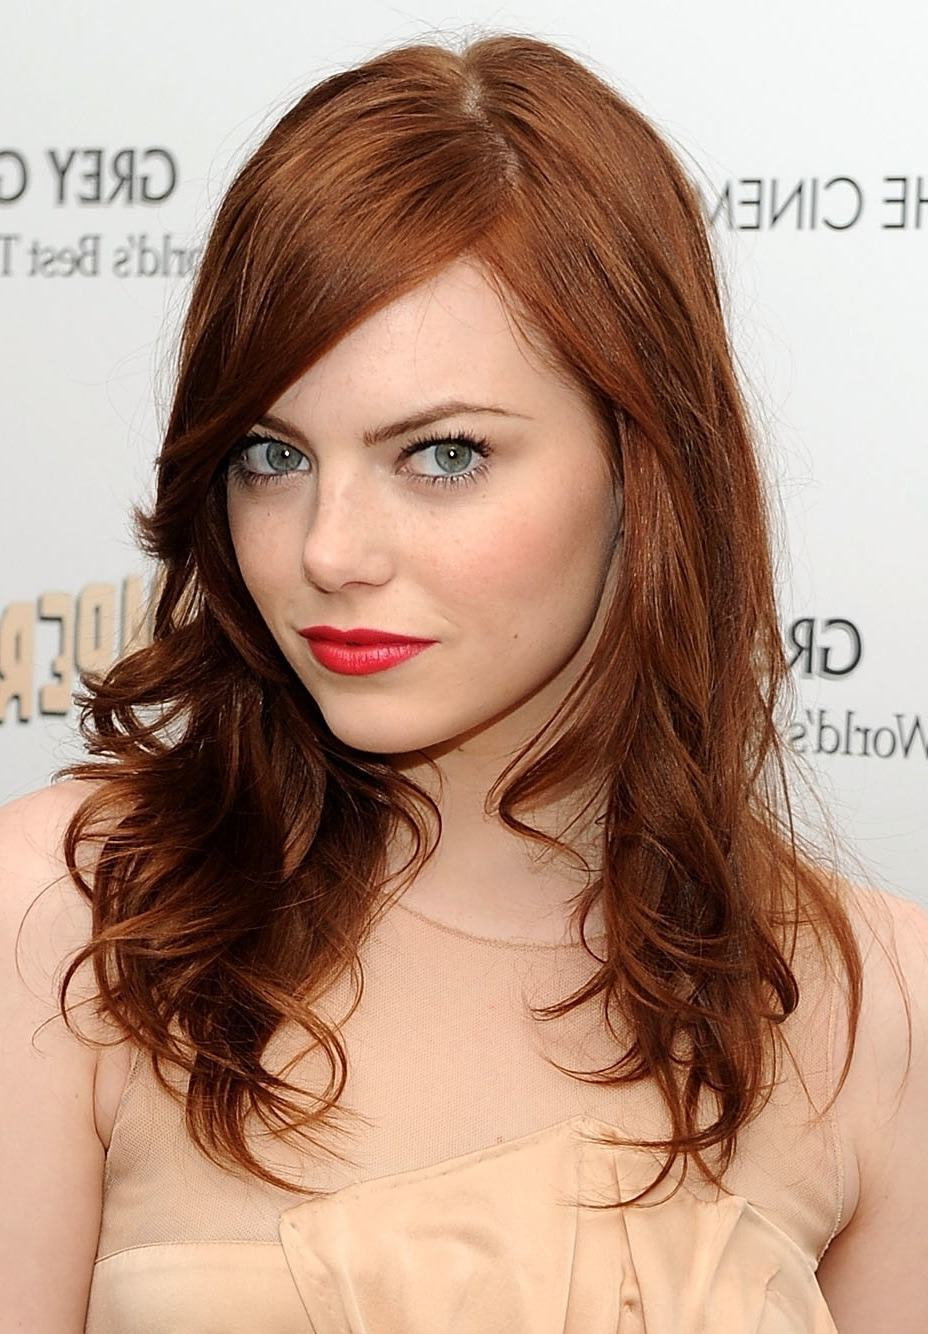 Well Liked Red Hair Medium Haircuts Inside Redheads, The Best Haircut For Your Shape Face (View 19 of 20)